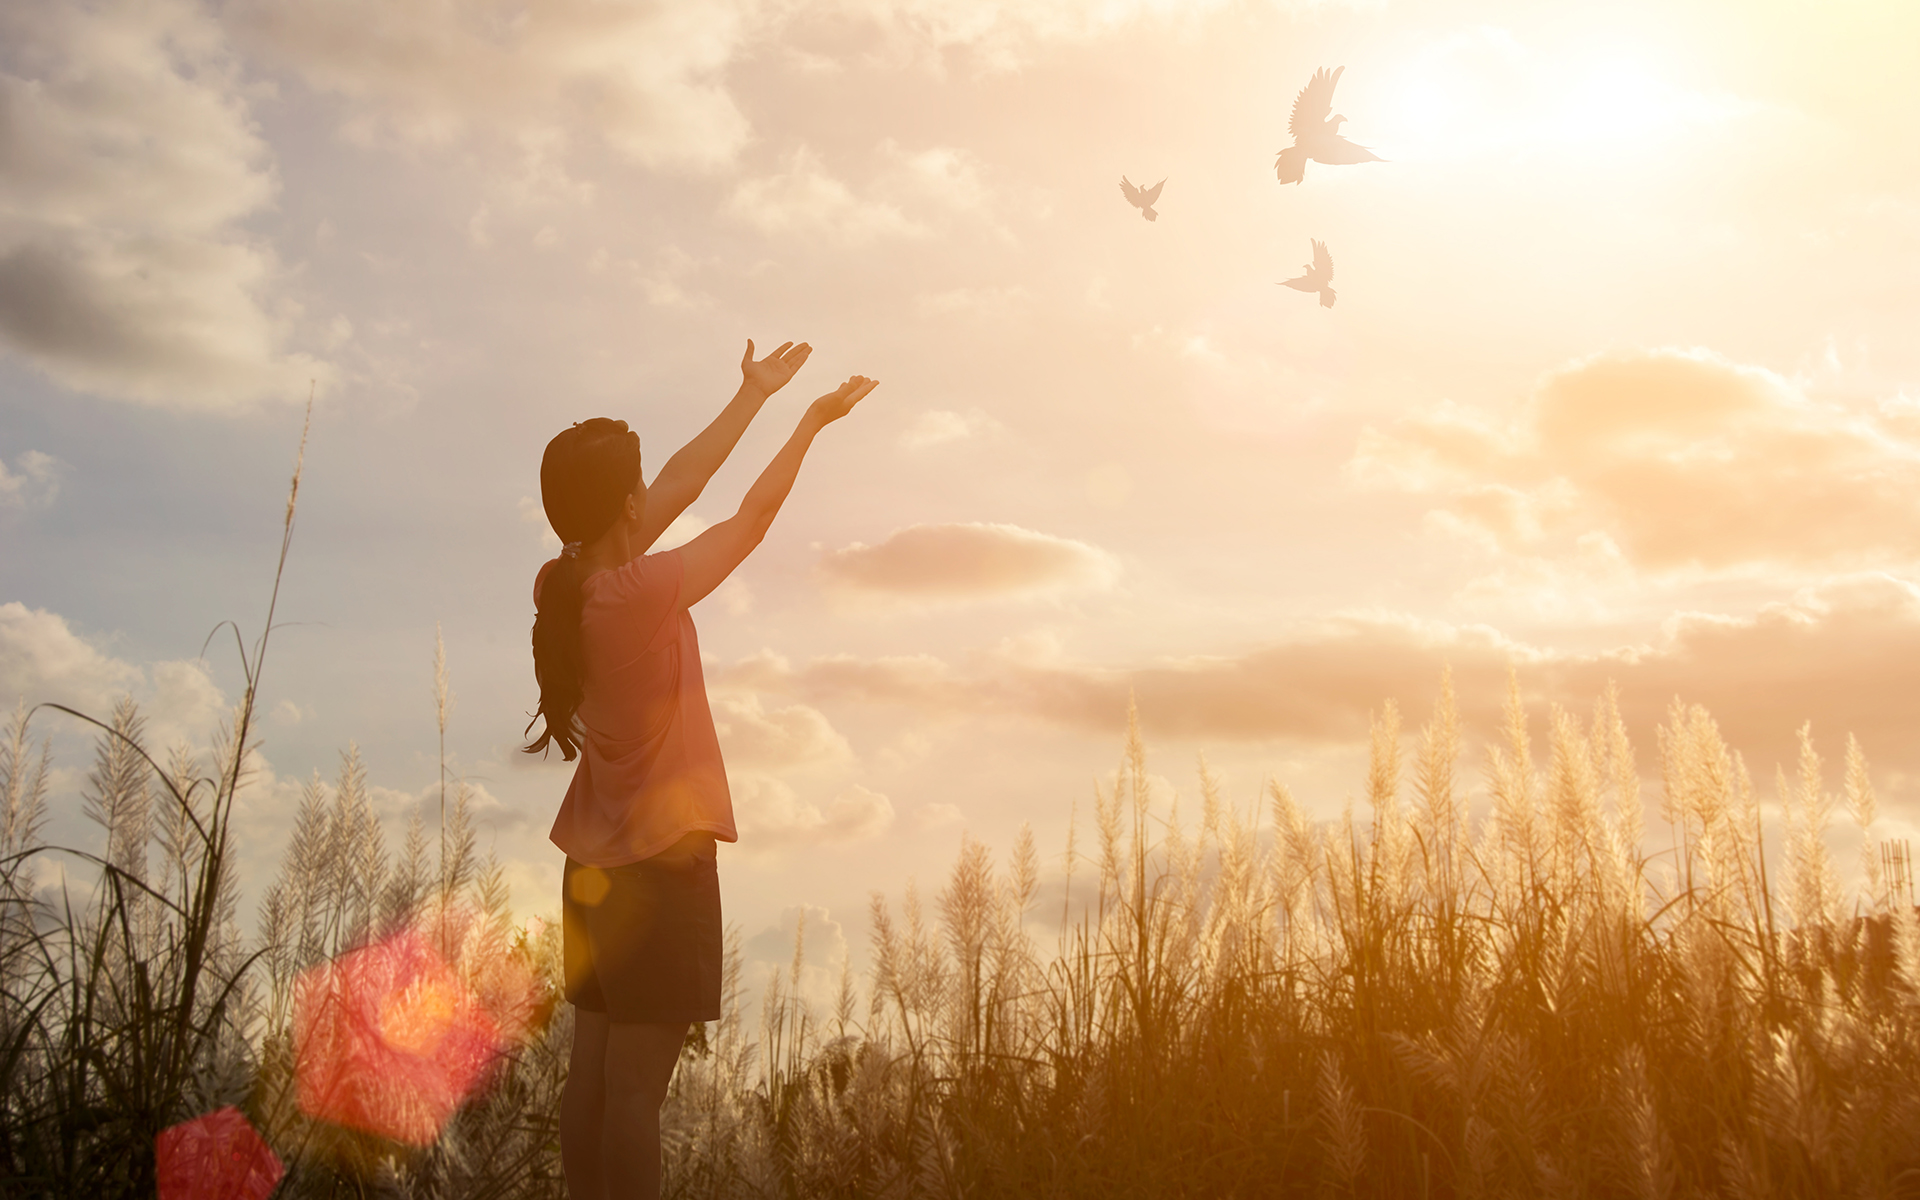 A 3-Minute Meditation to Cultivate Forgiveness - Freedom concept: Silhouette woman hand broken chains and praying